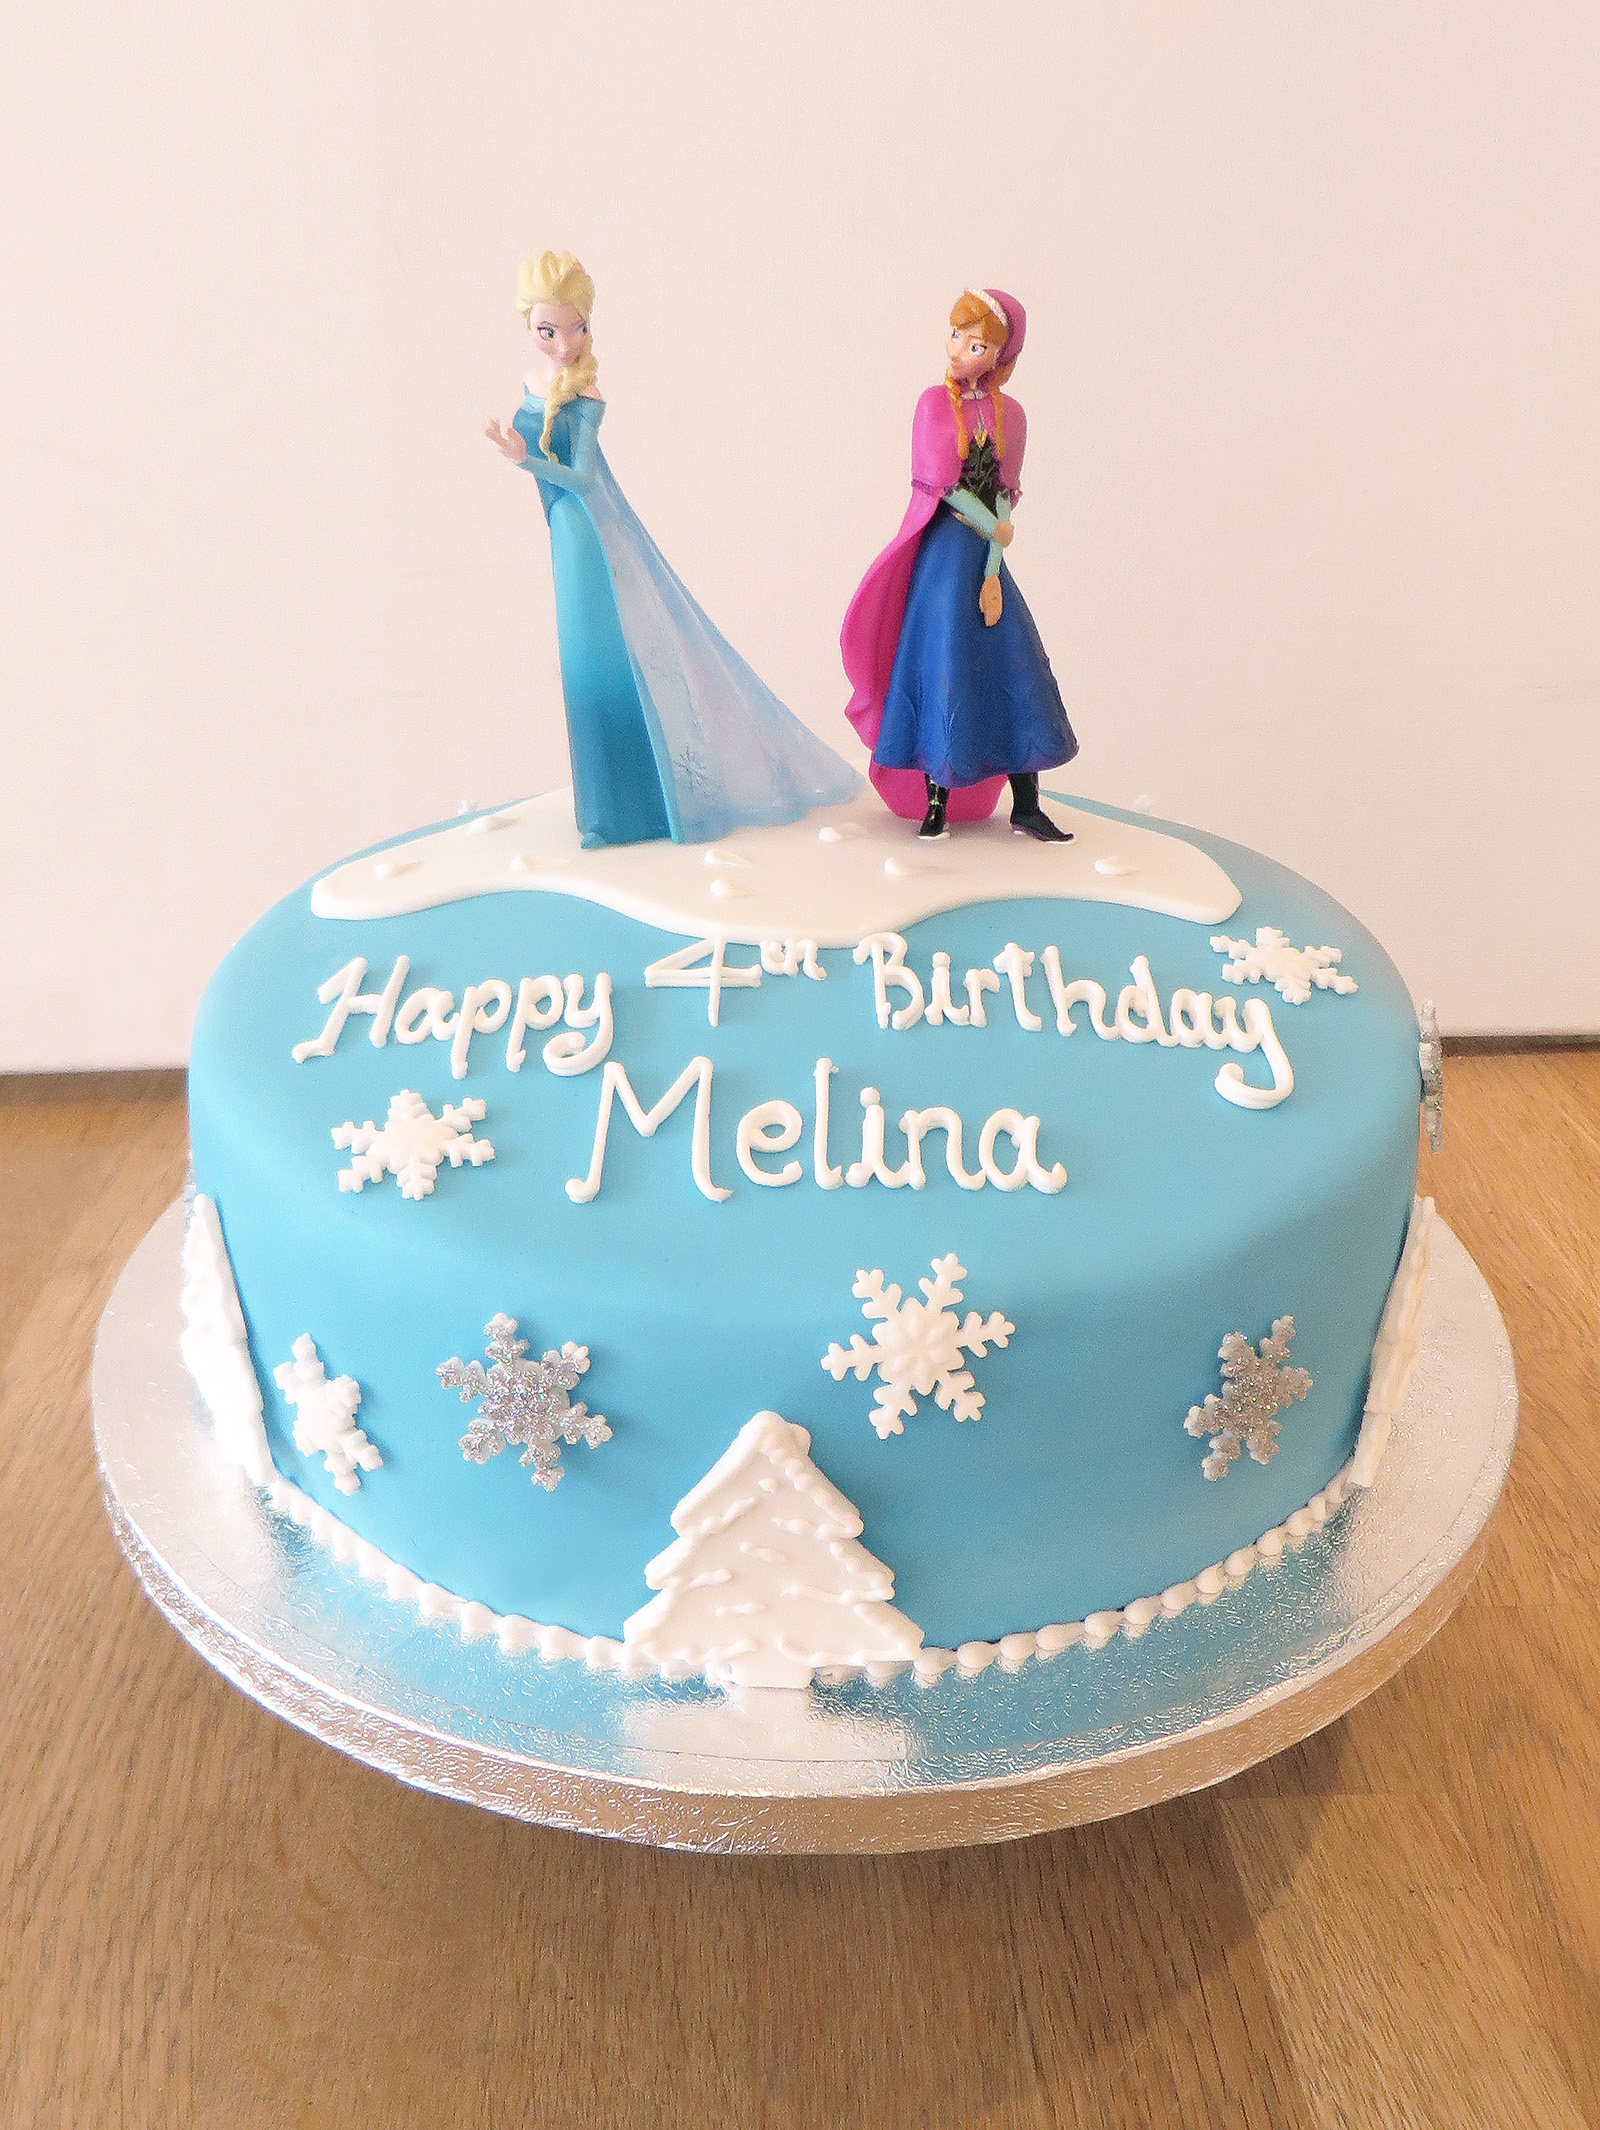 Celebration Cakes - The Cakery Leamington Spa